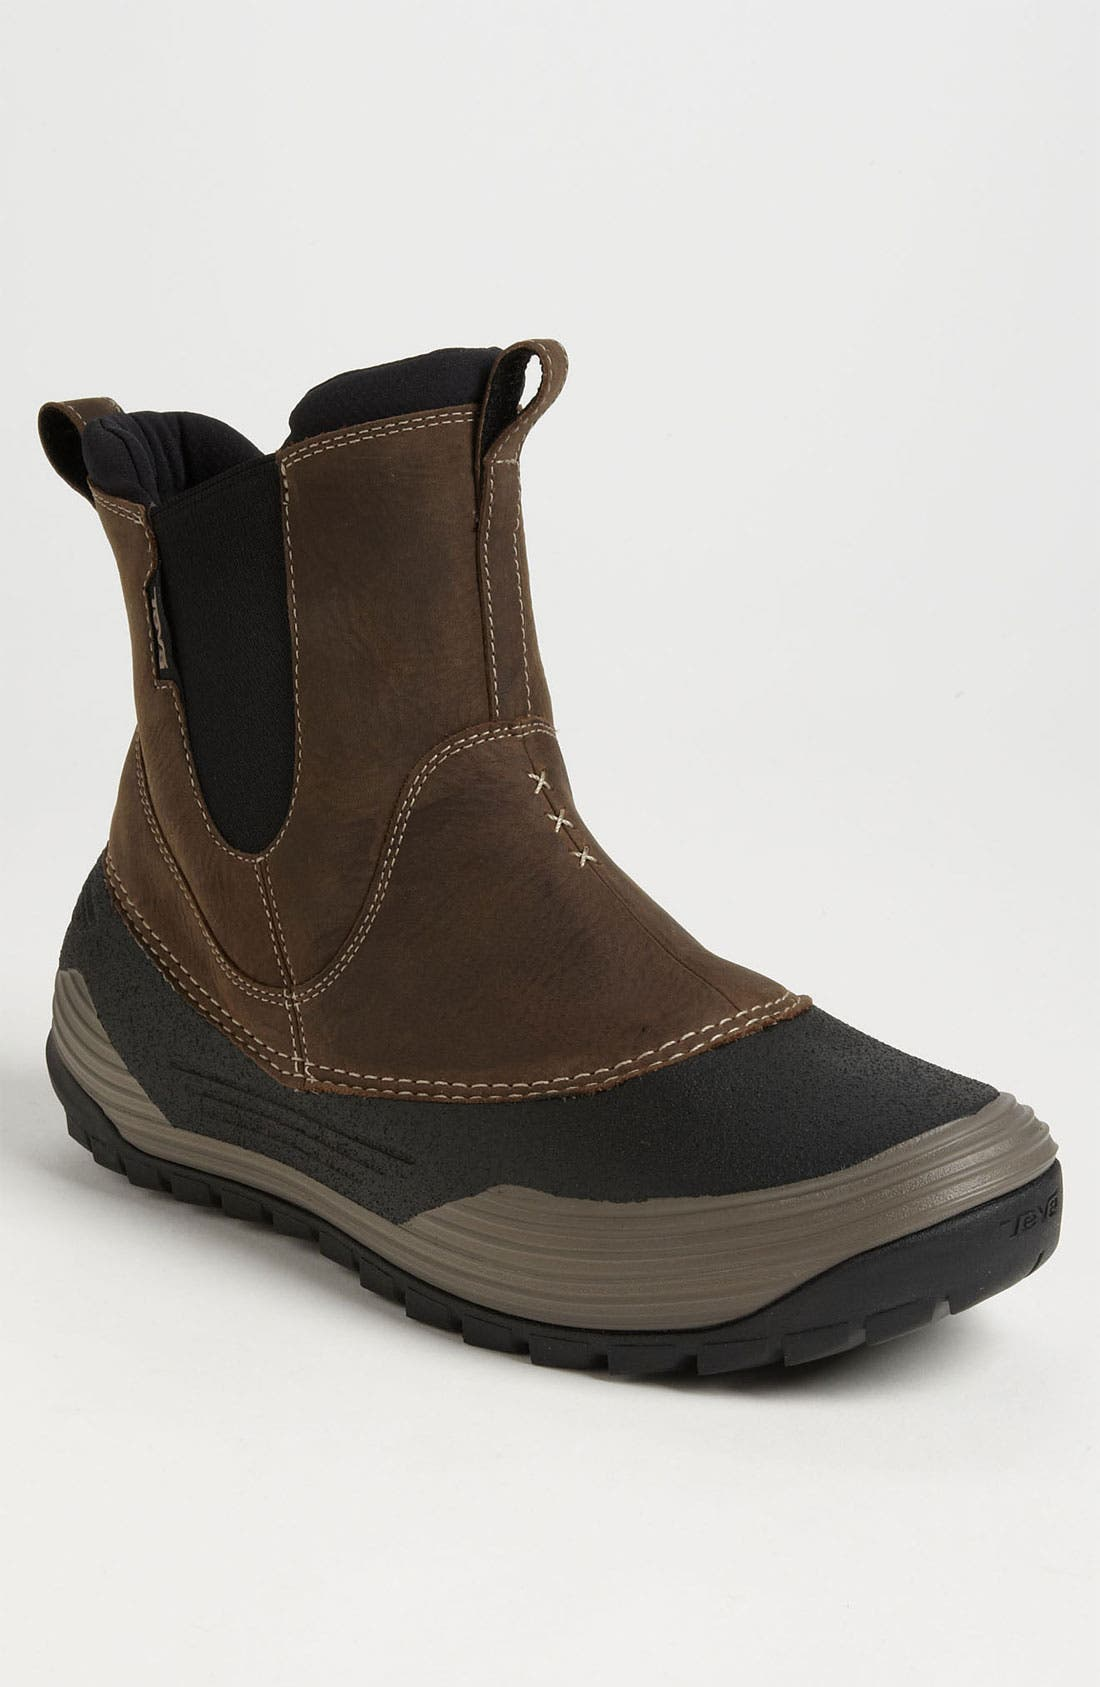 Alternate Image 1 Selected - Teva 'Loge Peak' Snow Boot (Online Only)